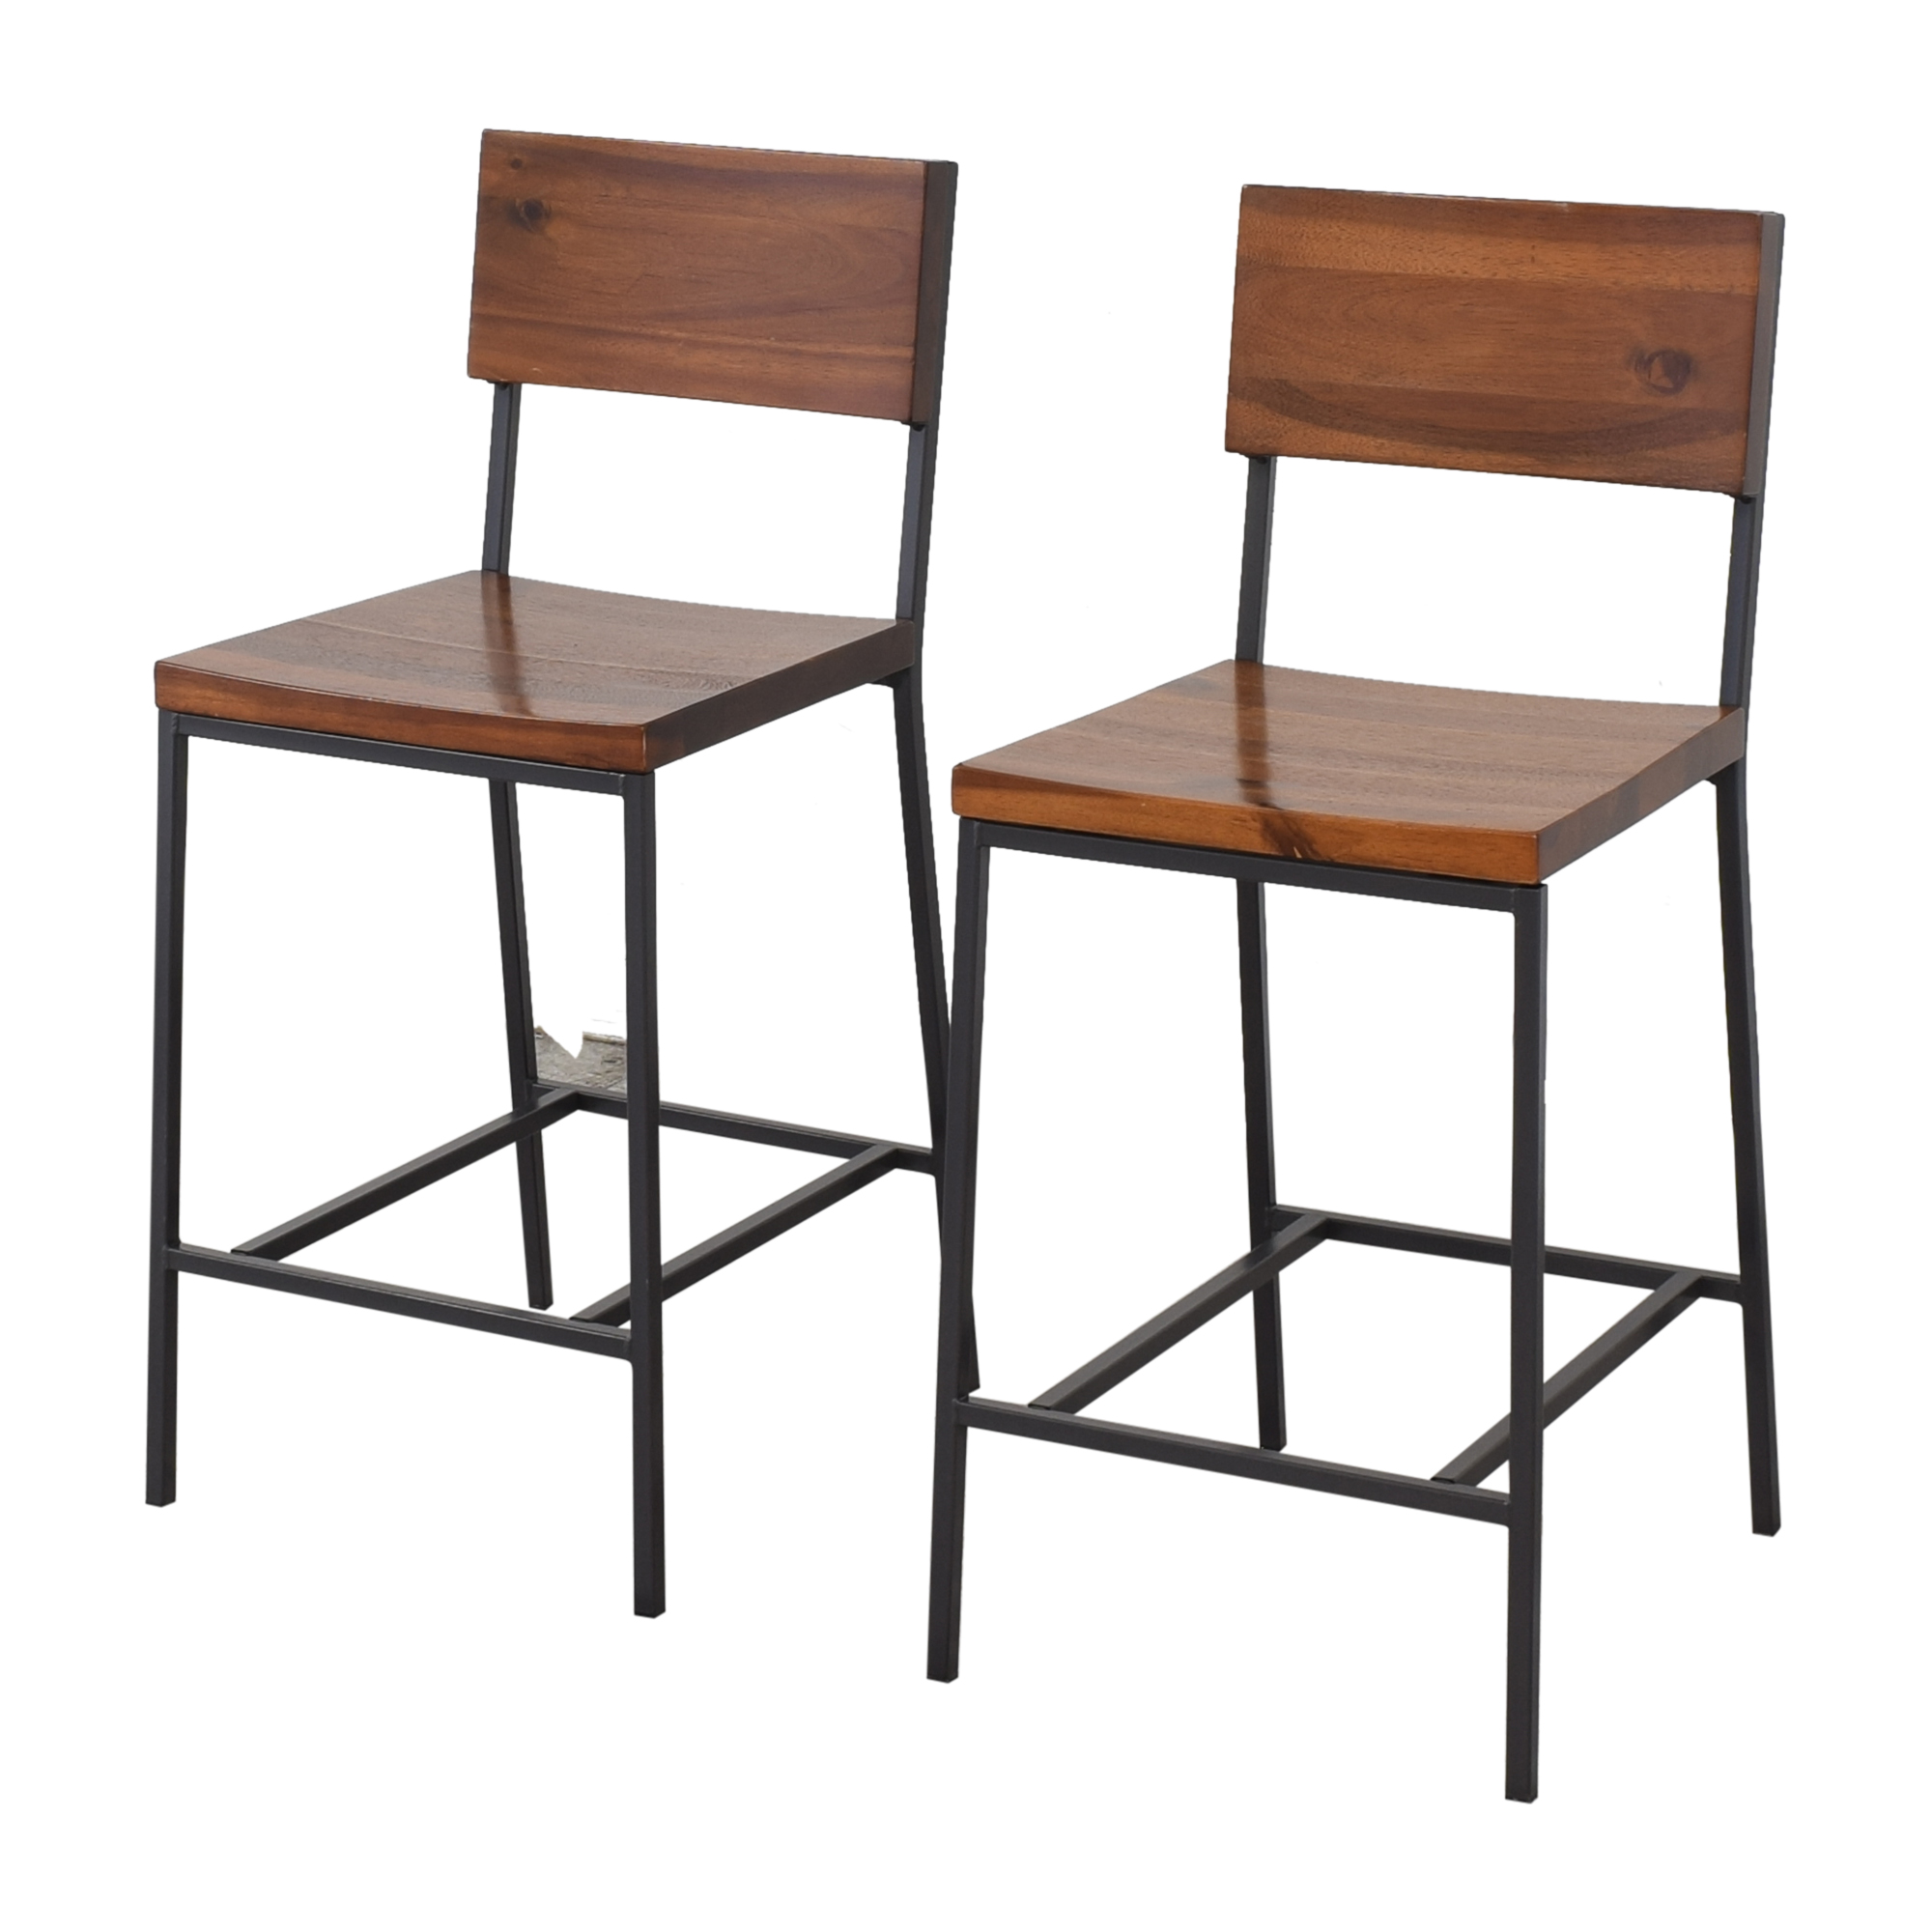 West Elm West Elm Rustic Counter Stools coupon